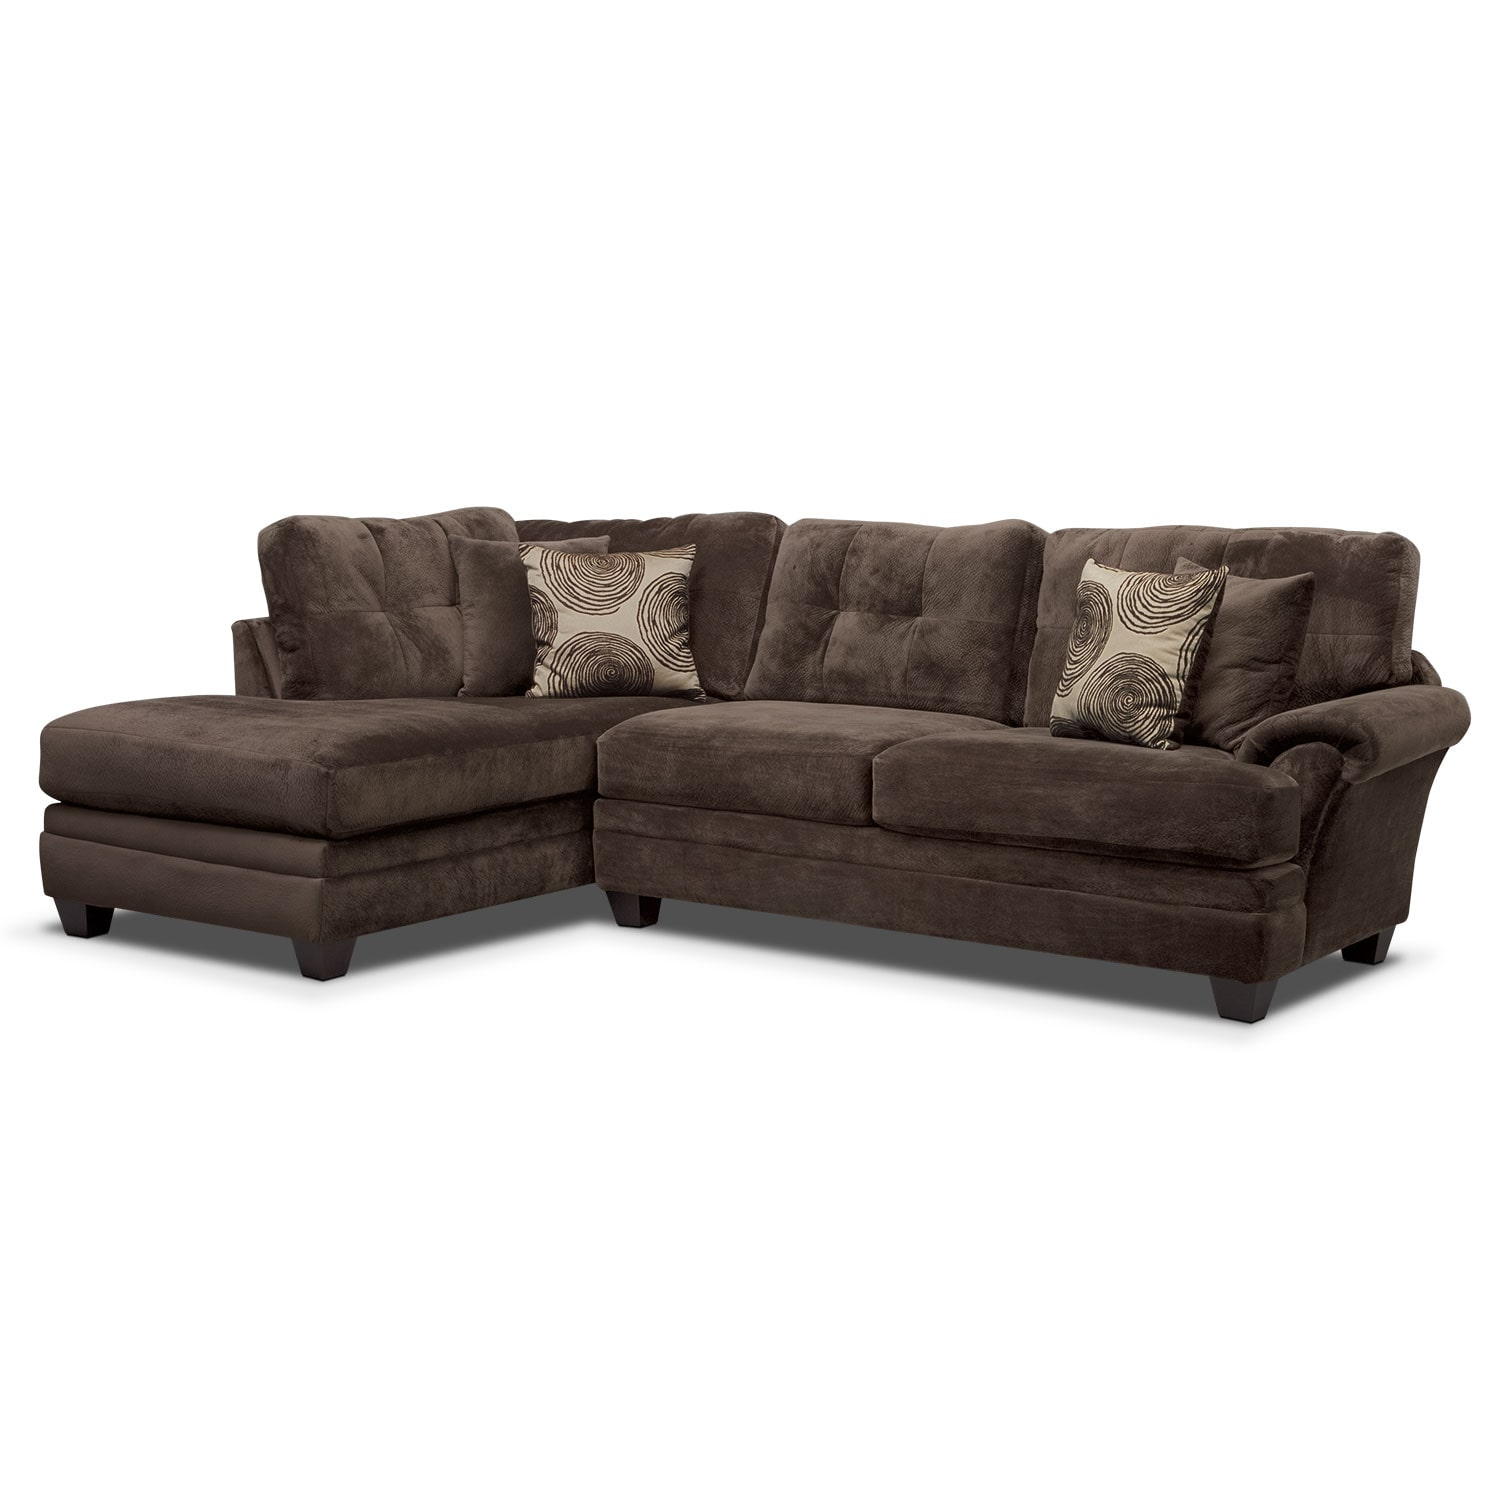 Cordelle 2 piece left facing chaise sectional chocolate for 2 piece chaise sectional